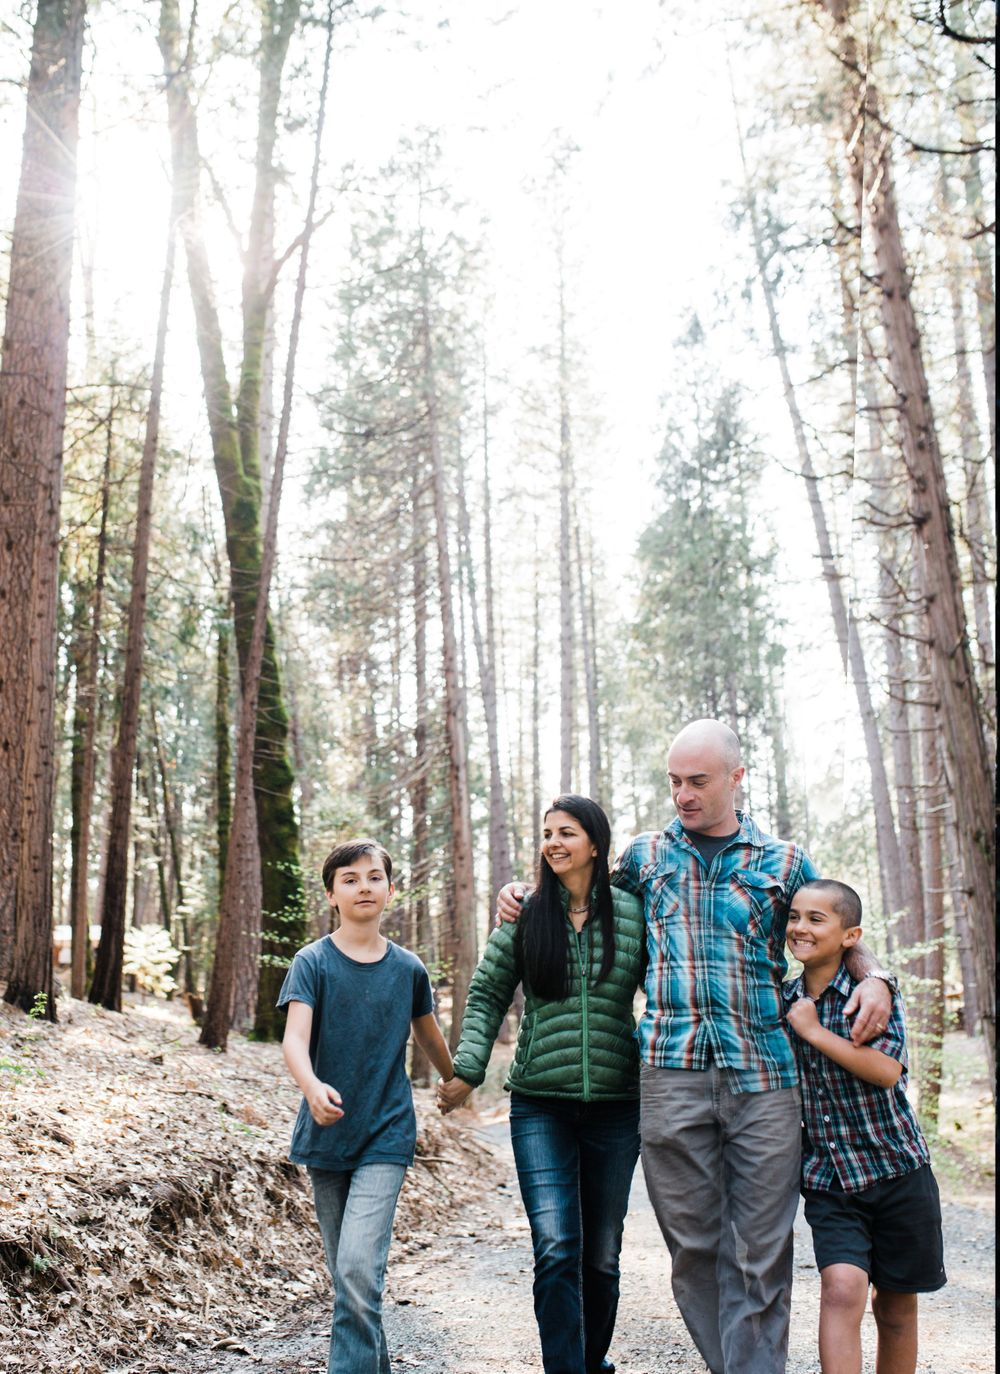 Family Portraits with Lenkaland Photography in Nevada County, California